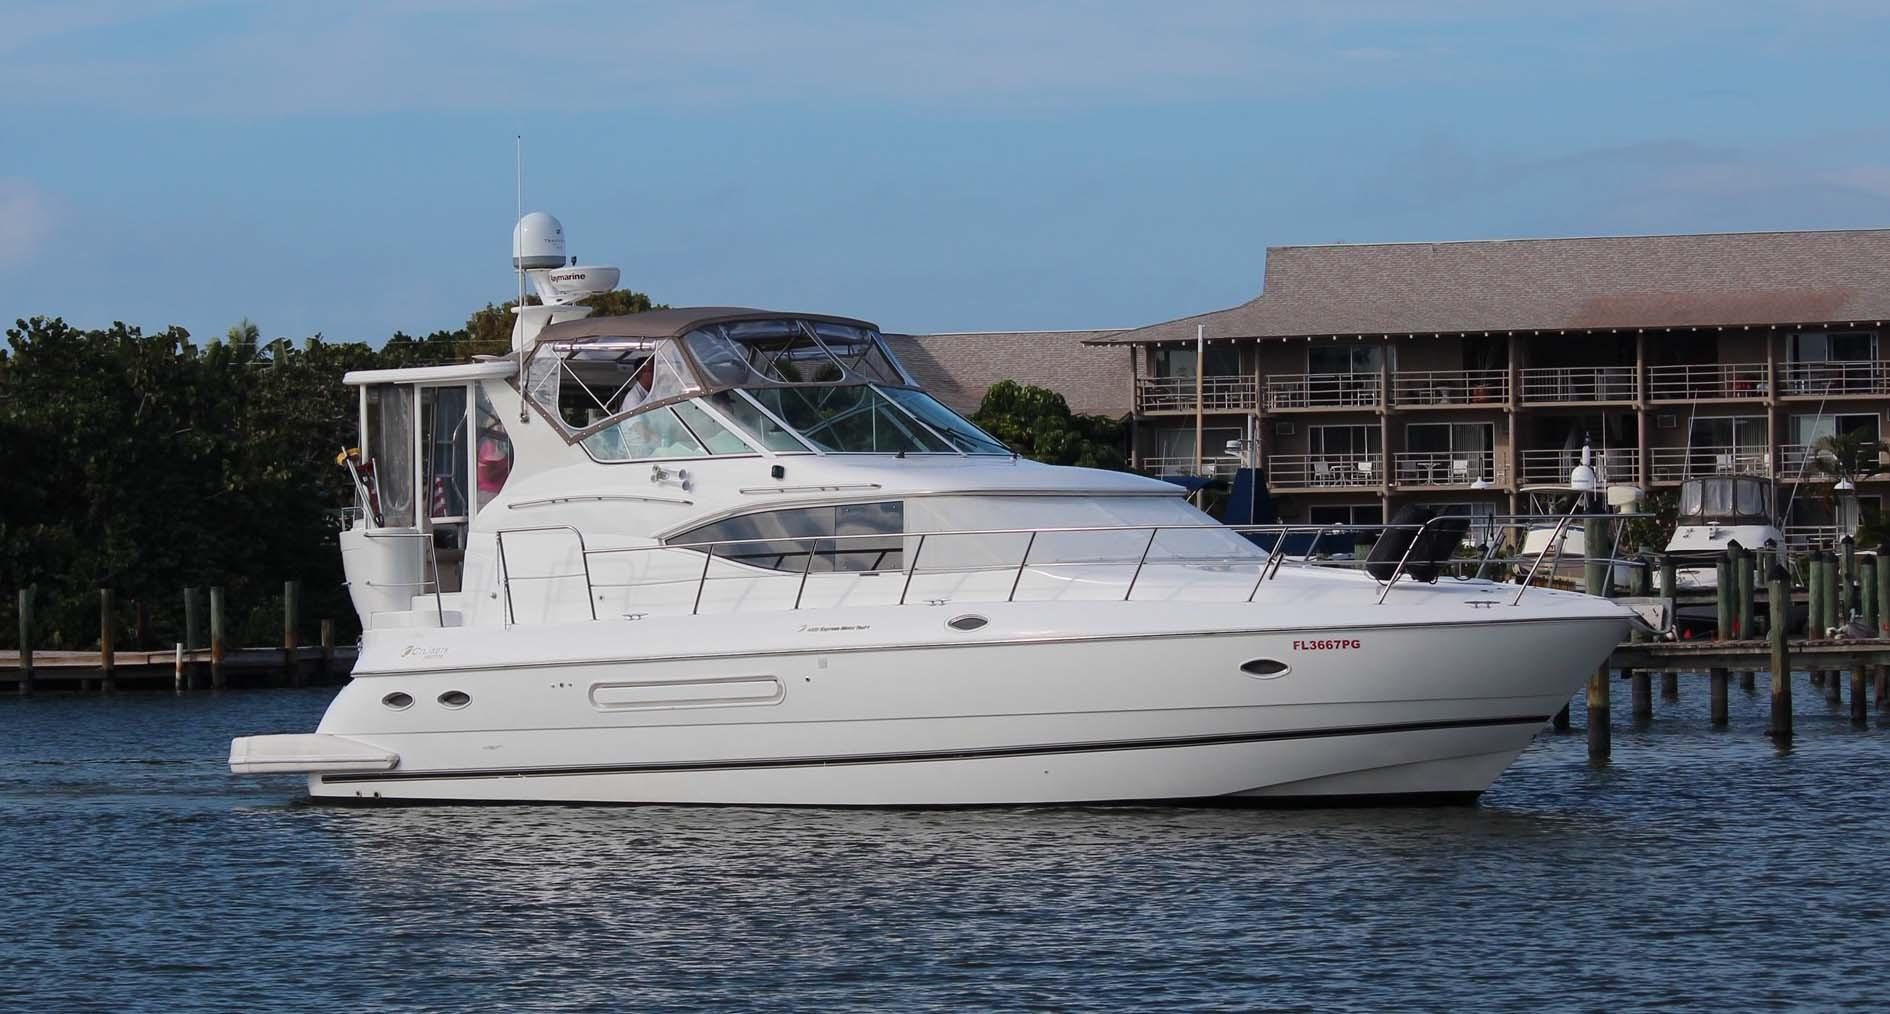 44 Cruisers Yachts Cynsational 2001 Naples Denison Yacht Sales